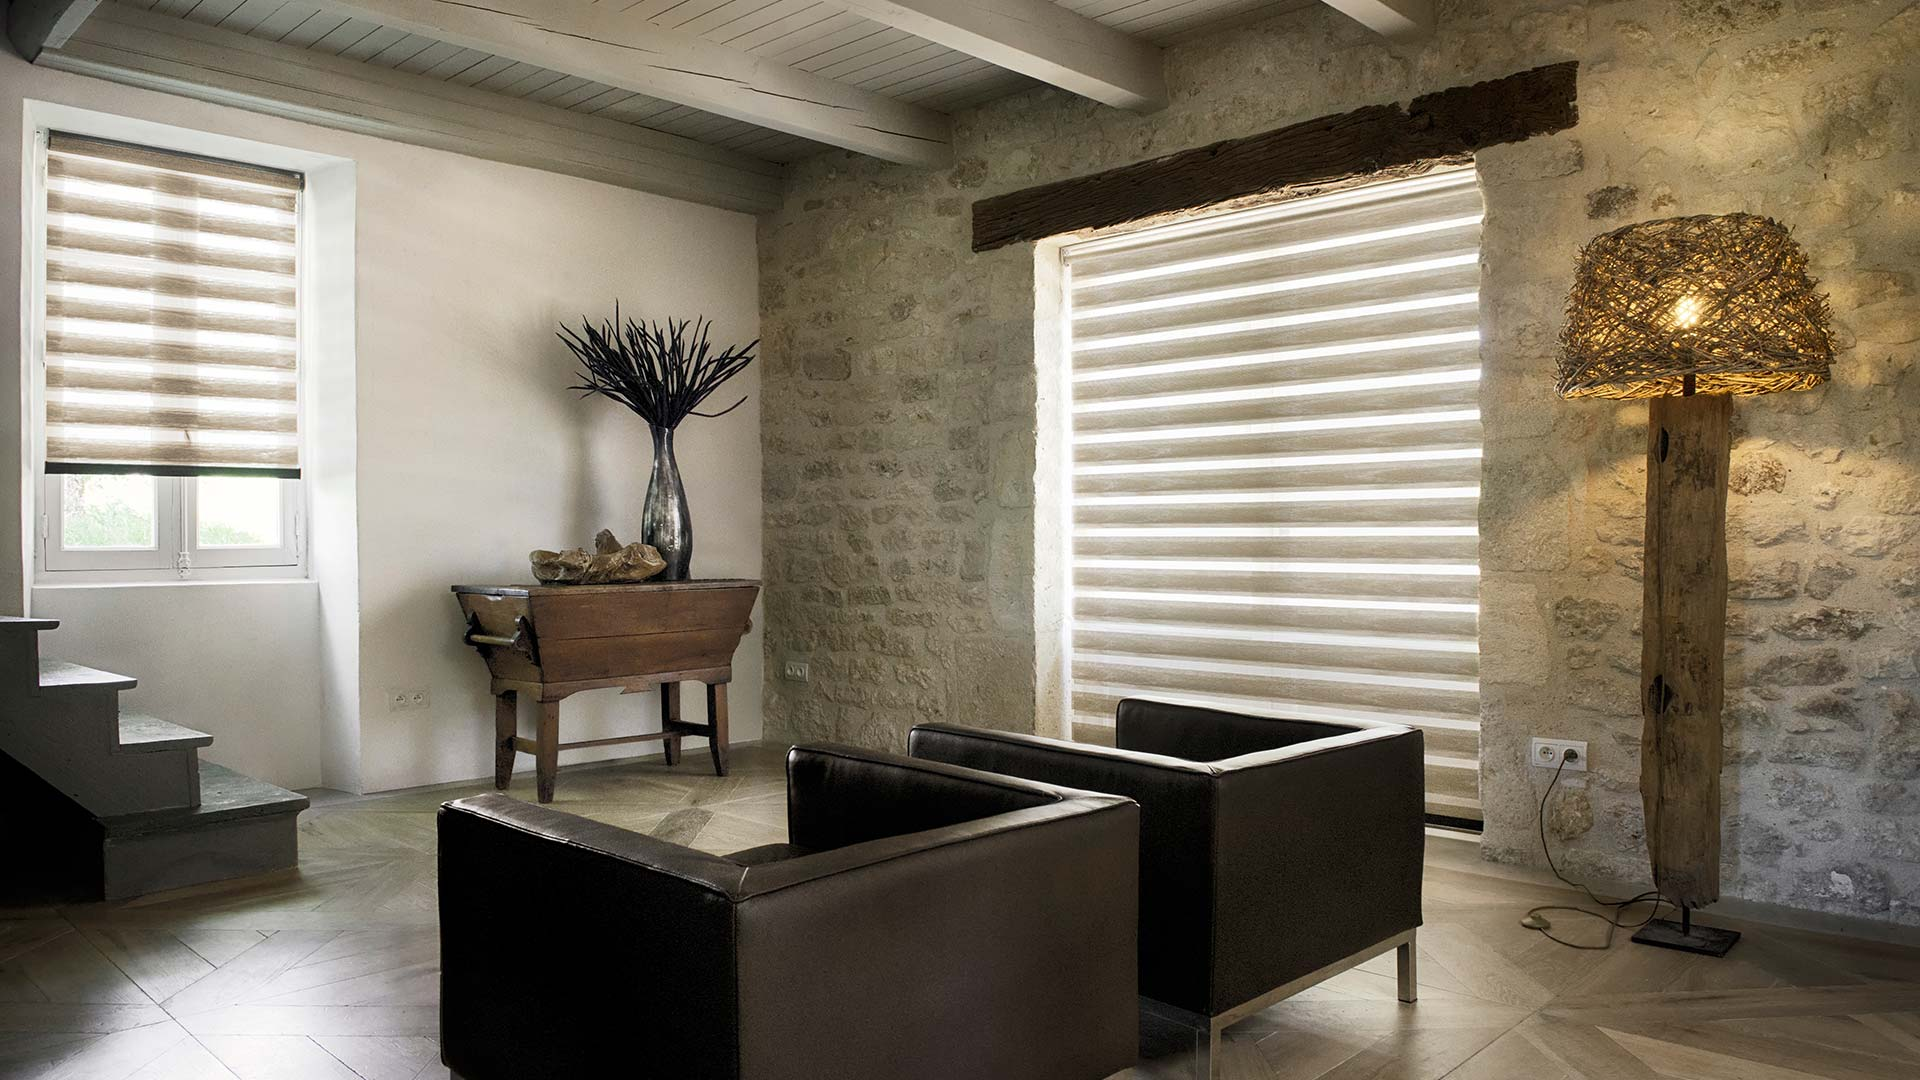 windo villa shutter woven natural discount van and wooden go windows window blind ideas select blinds wood shades january vertical